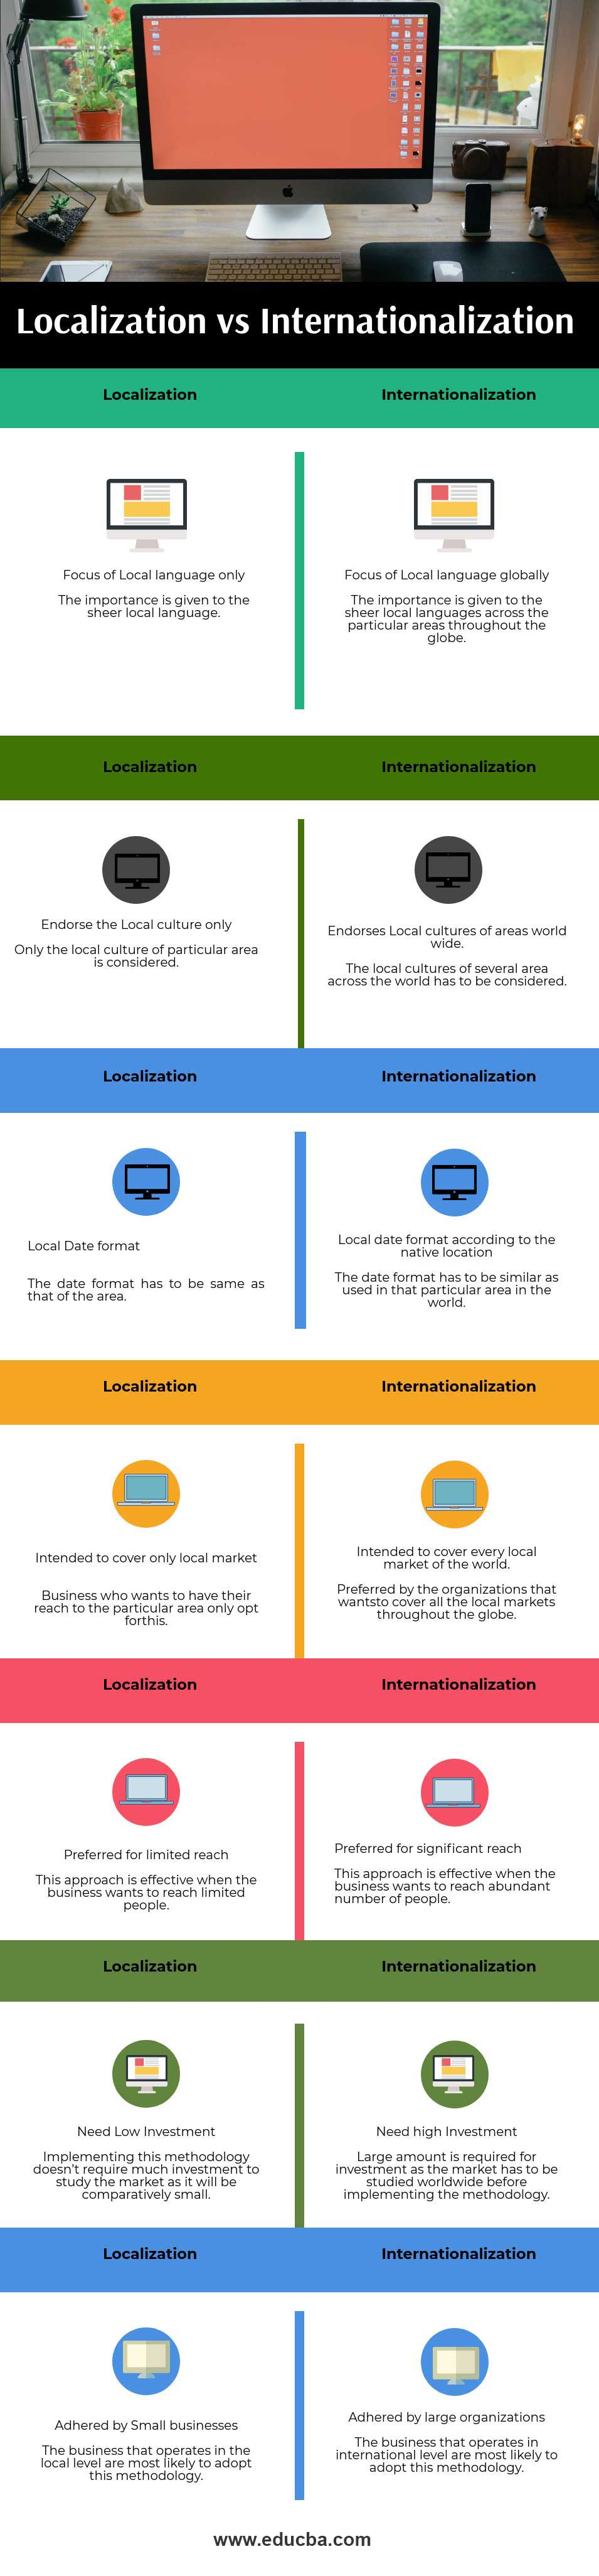 Localization vs Internationalization info